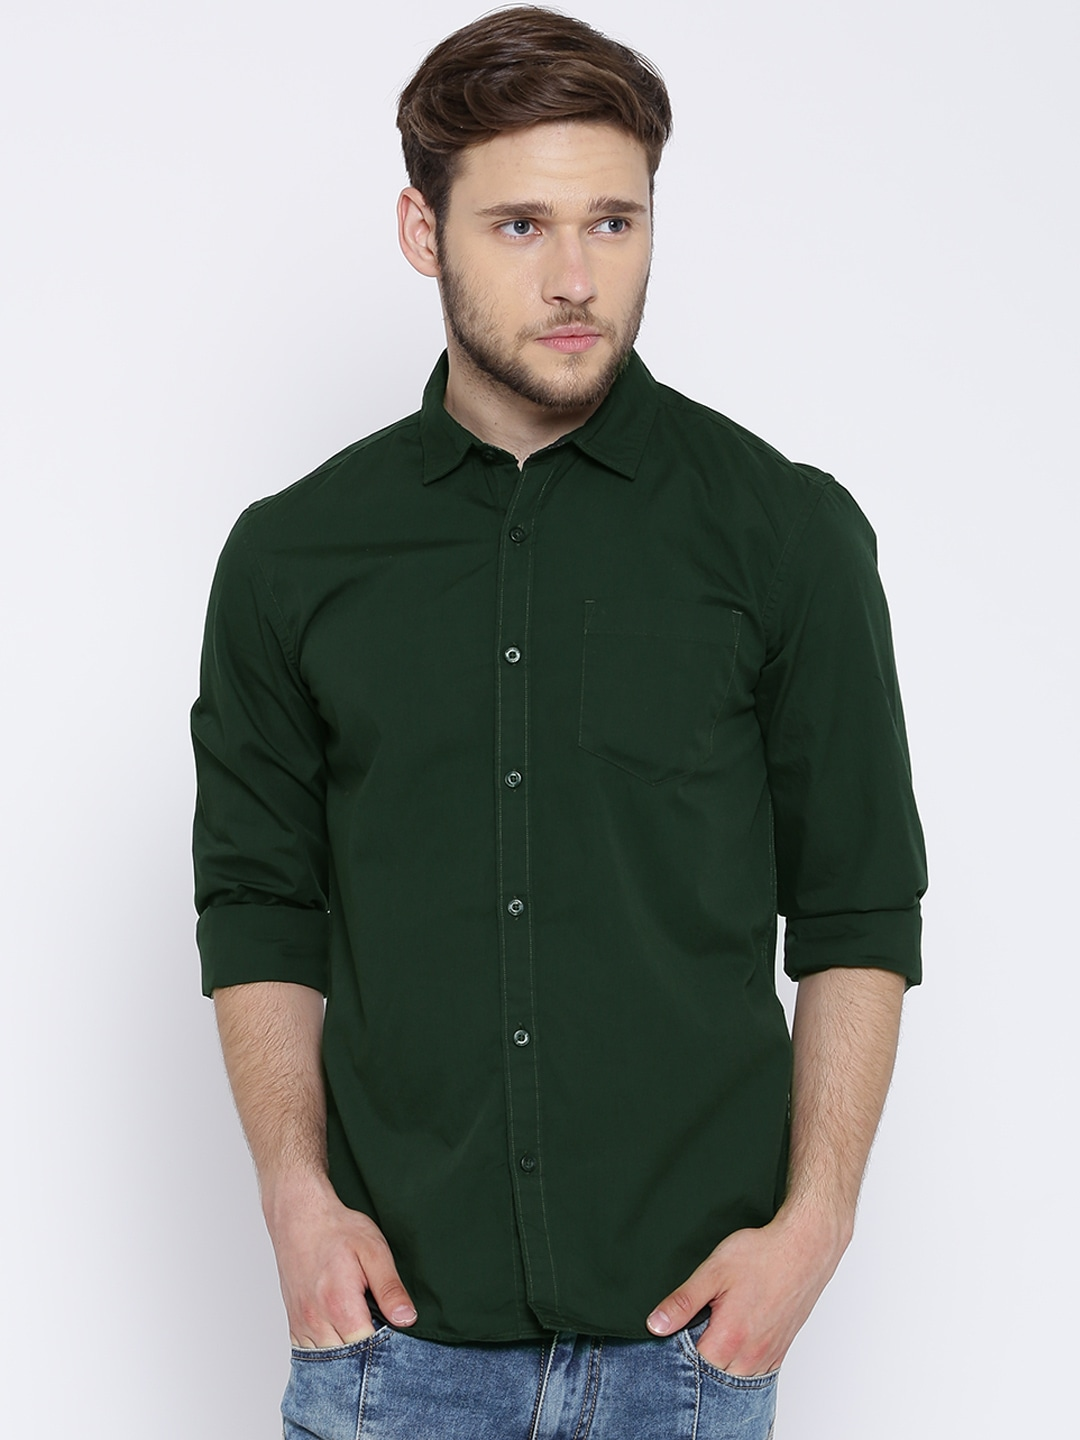 Find great deals on eBay for mens green dress shirt. Shop with confidence. Skip to main content. eBay: Fashion Men's Luxury Slim Fit Casual Shirts Long Sleeve Formal Dress Shirt Tops. Brand New. $ Buy It Now. Free Shipping. Army Green Dress Shirts for Men. Lacoste Green Dress Shirts for Men.